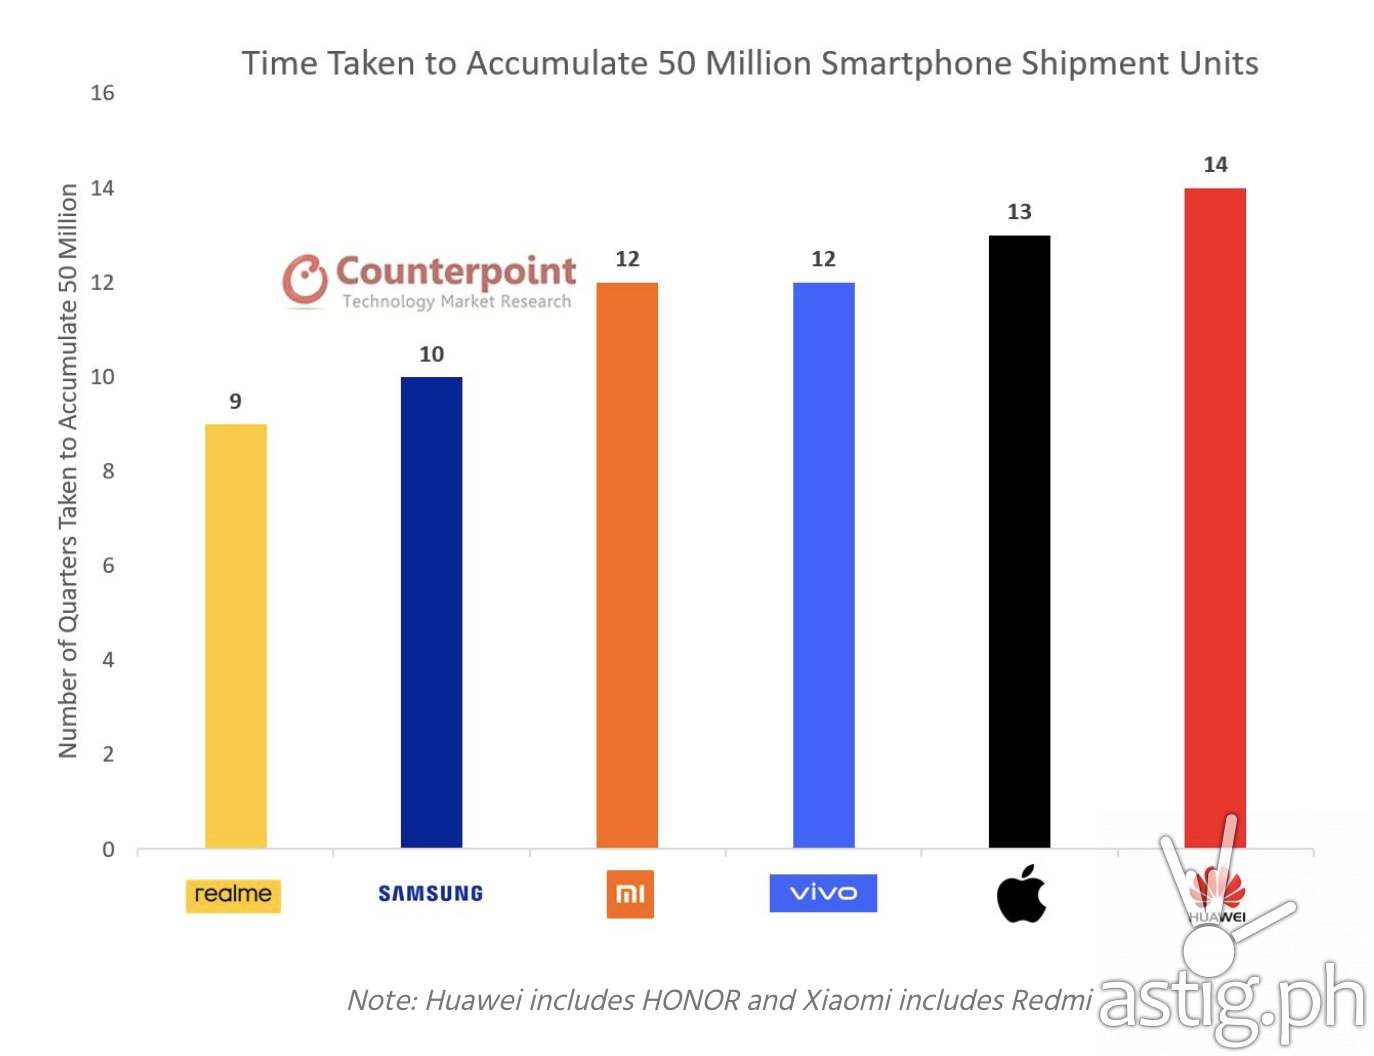 Time Taken to Accumulate 50 Million Smartphone Shipment Units (Source: Counterpoint Q3 2020 Global Smartphone Shipments Report)